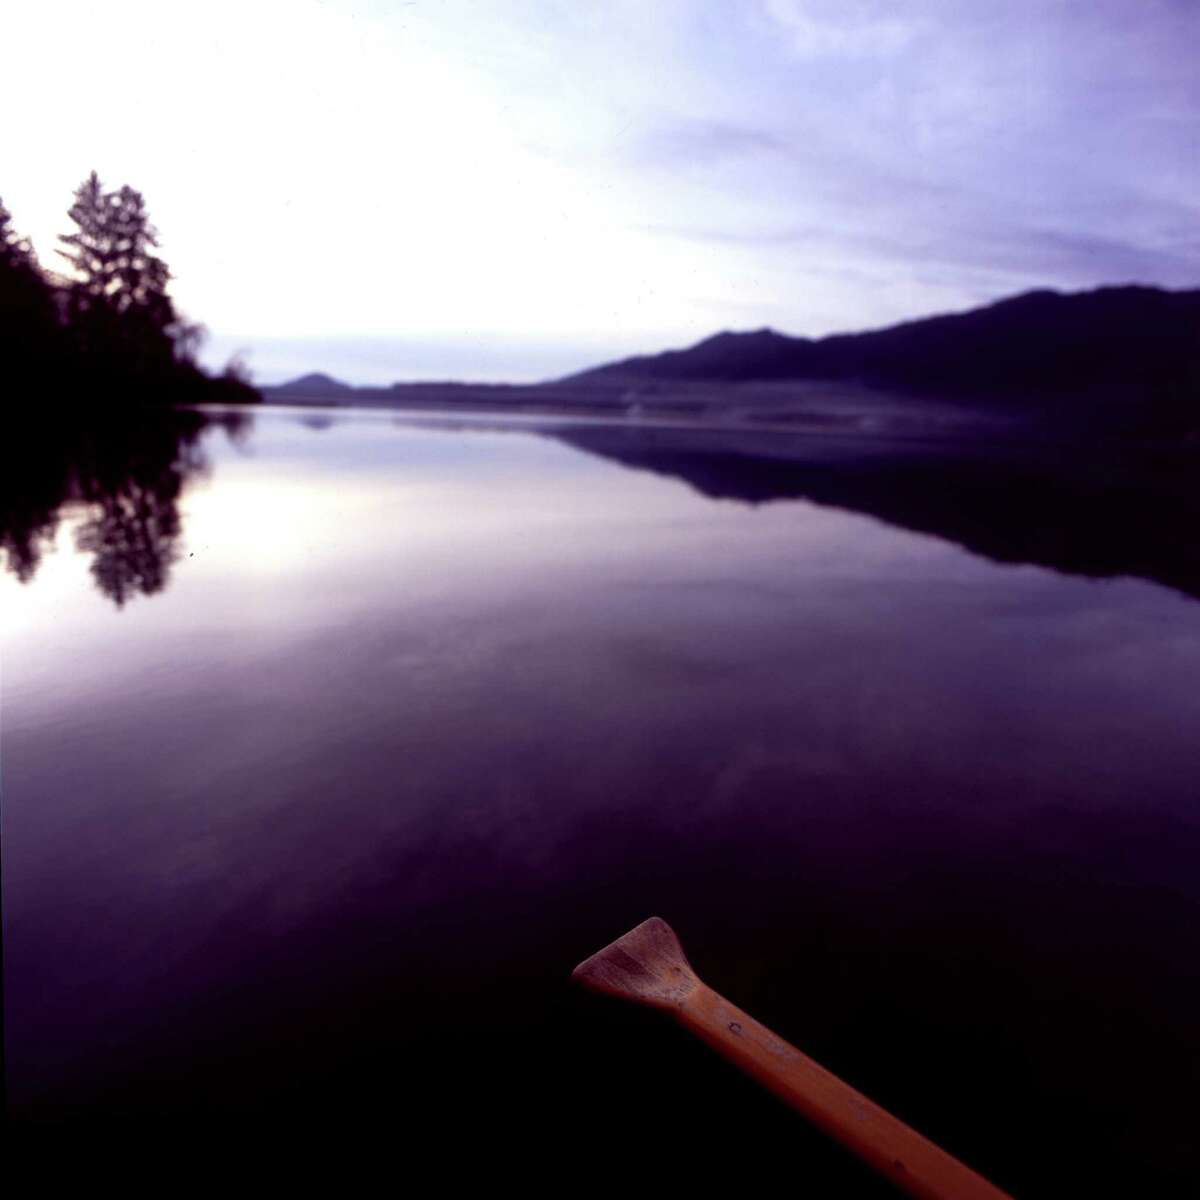 Lake Quinault:  Ridges above the Lake are part of the Wild Olympics wilderness bill.